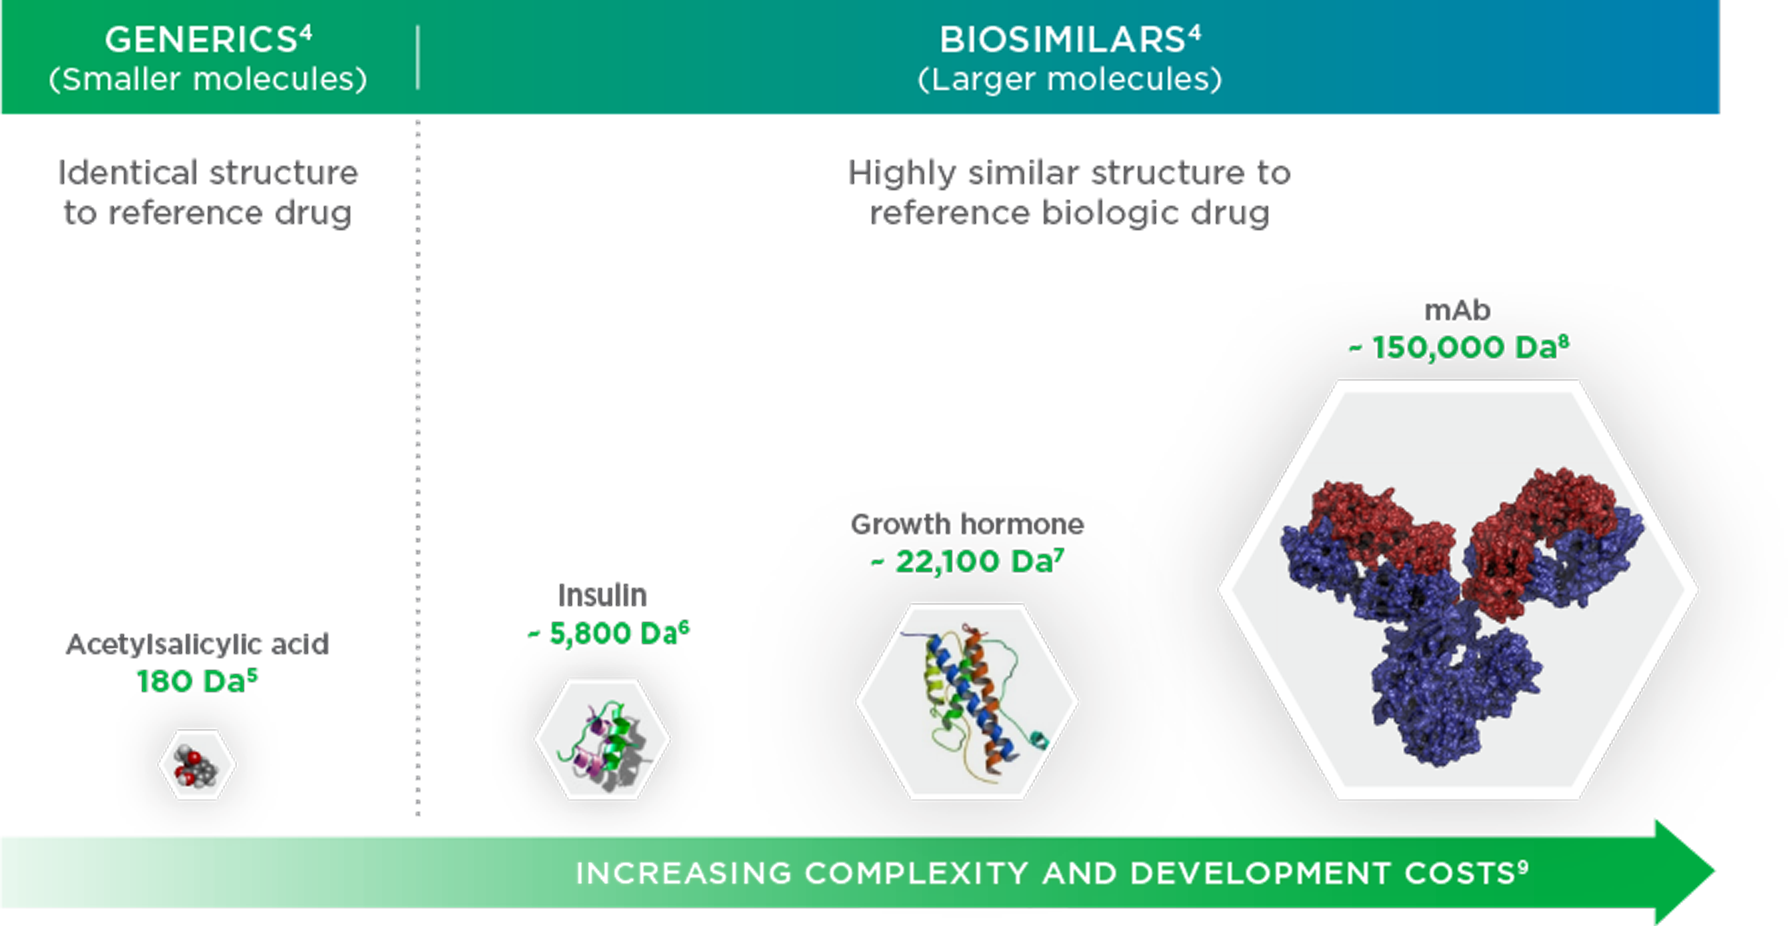 Difference between generics and biosimilars